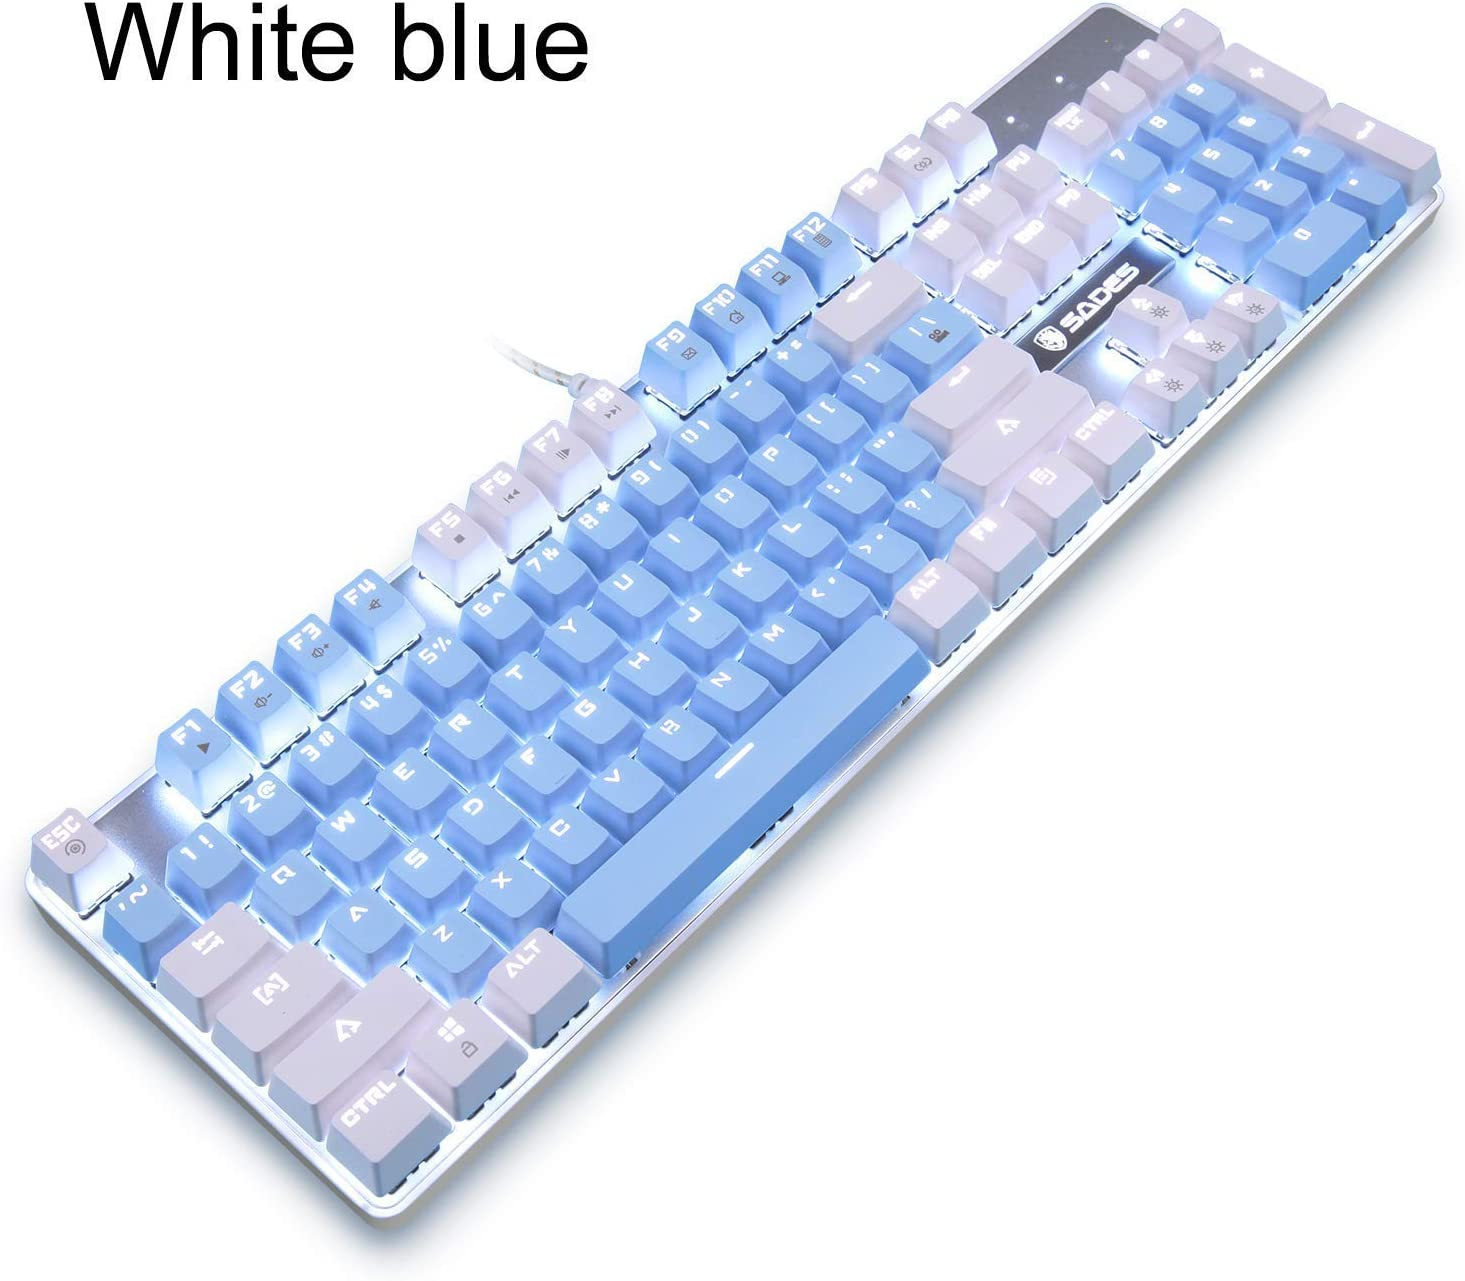 Mechanical Gaming Keyboard,SADES Blue Switches 104 Keys Mechanical Gaming Keyboard,Wired USB White LED Backlit Computer Keyboard,Cute Mechanical Gaming Keyboard for PC/Mac/Laptop(White Blue)